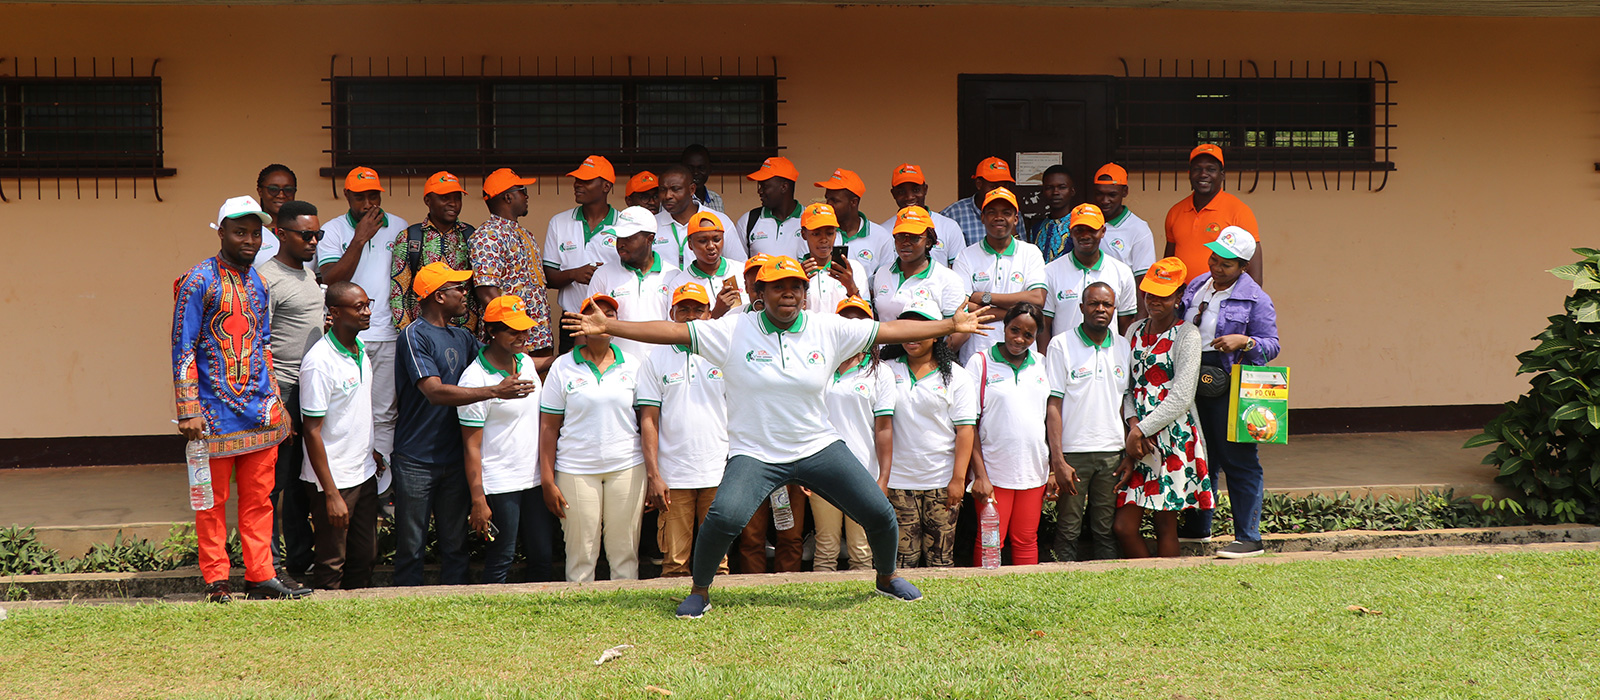 EXPANDING OPPORTUNITIES IN AGRICULTURE AND AGRIBUSINESS TO THE YOUTH